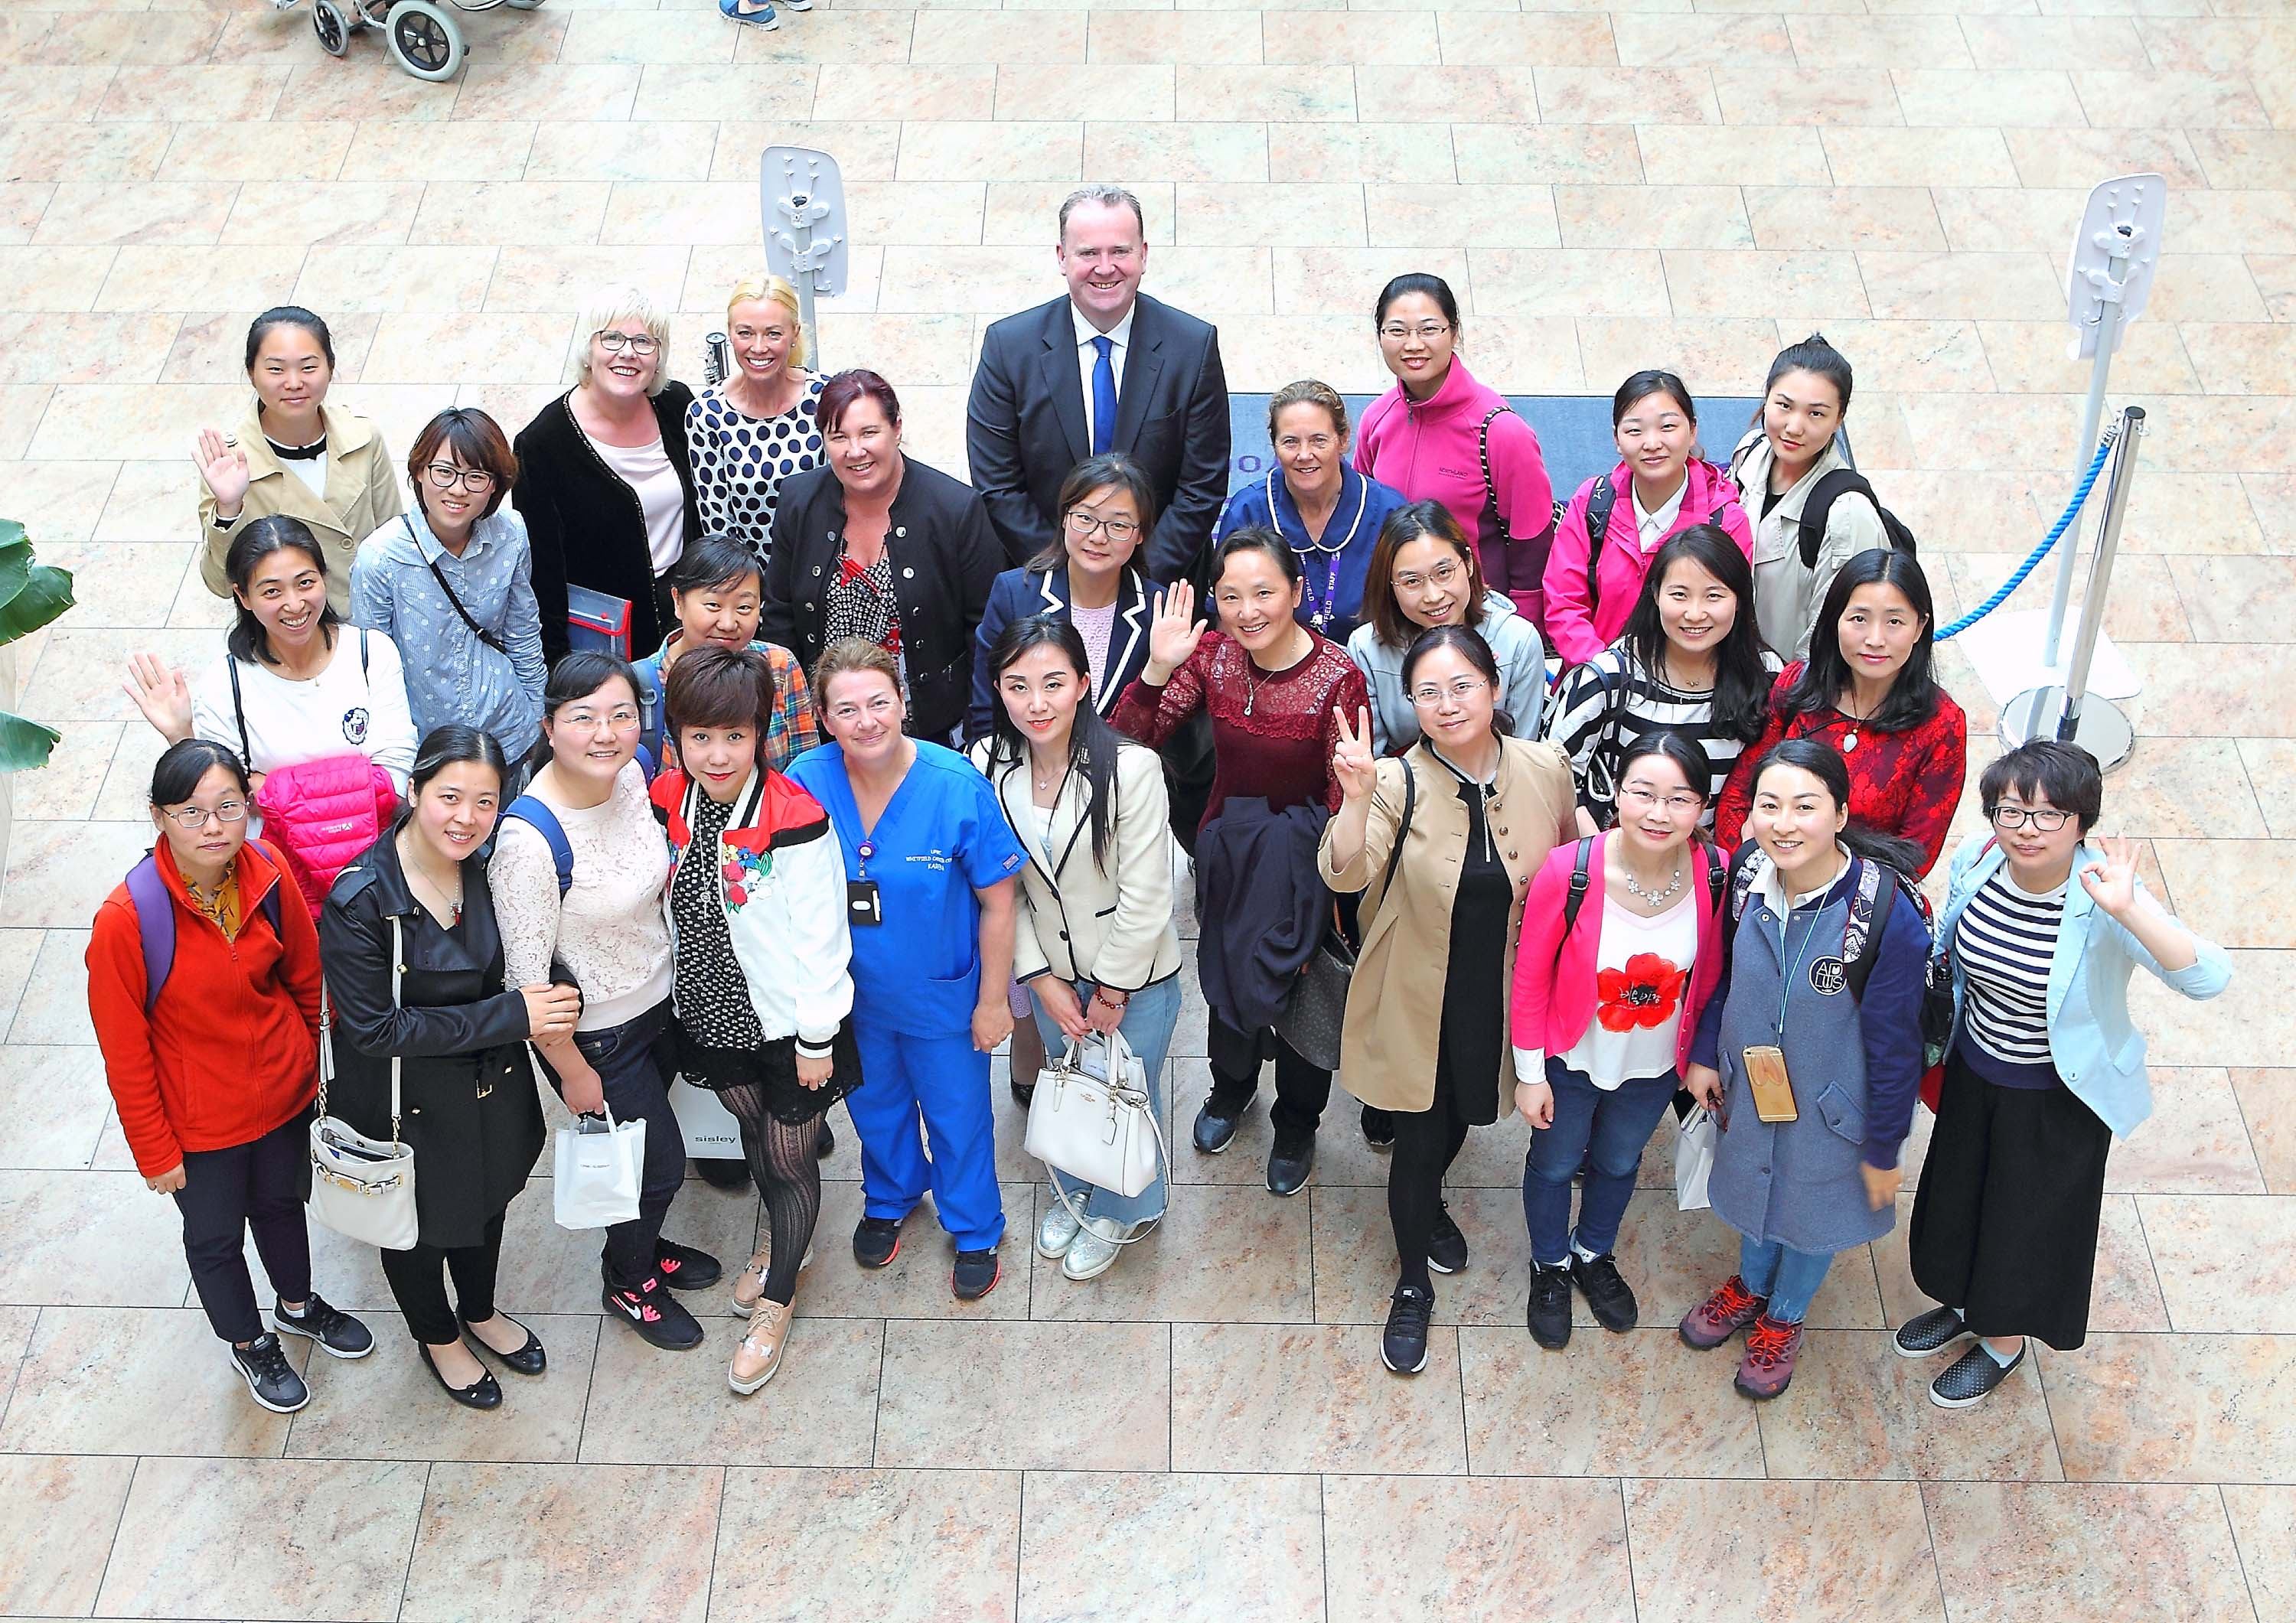 The delegation of specialist nurse managers from China with staff of UPMC Whitfield Cancer Centre and Whitfield Clinic. (Image:  Noel Browne)